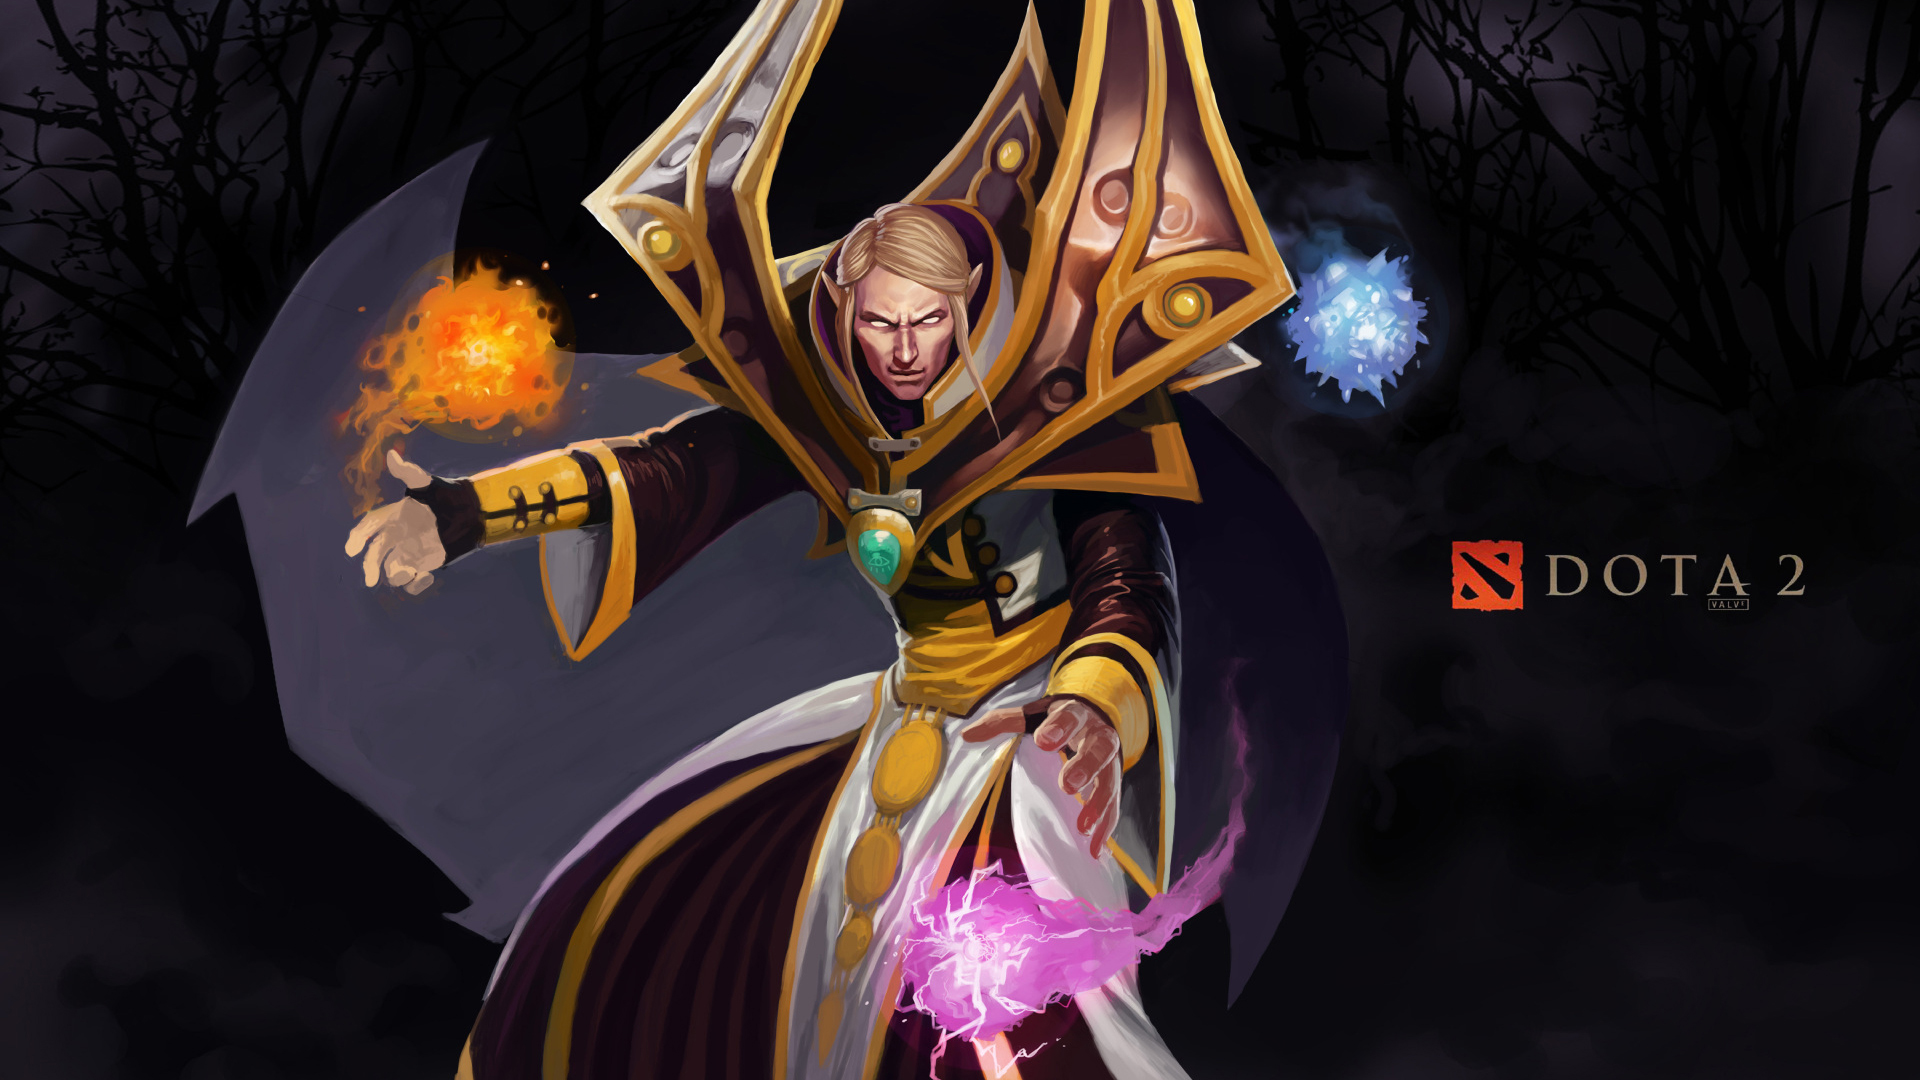 Dota 2 Invoker 1080p 0m Wallpaper HD